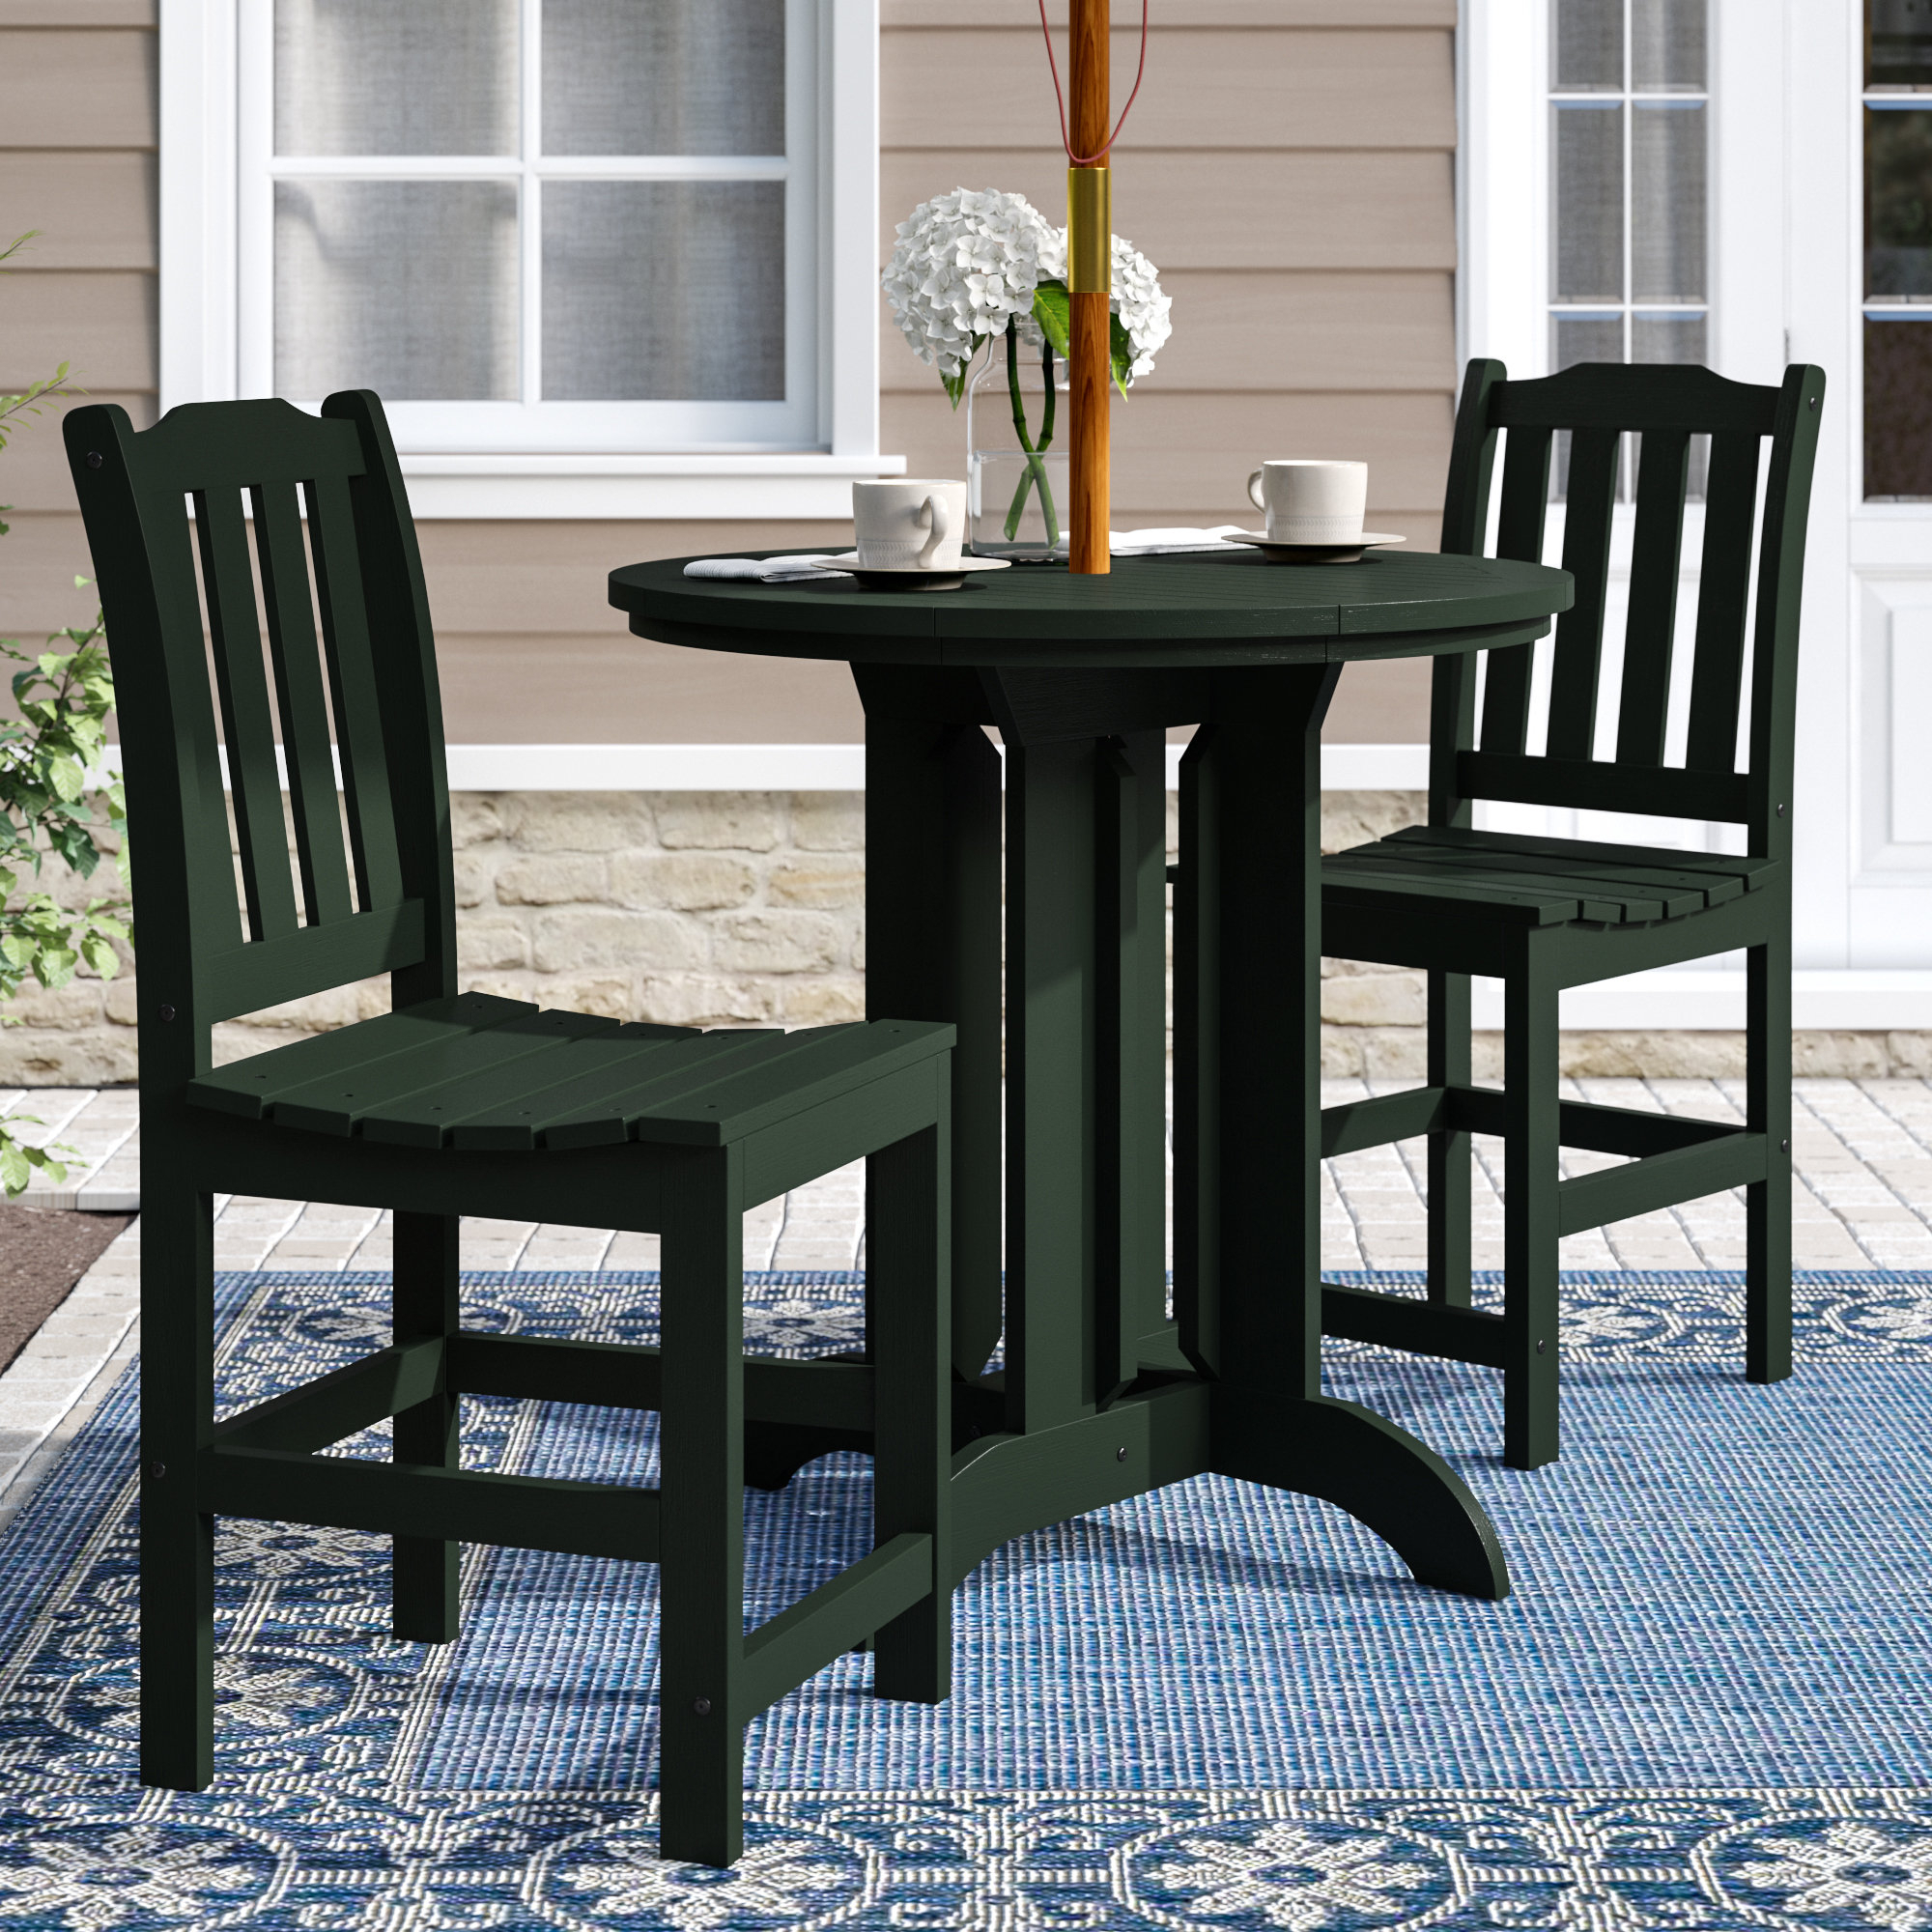 Regan 3 Piece Counter Height Dining Set Inside Most Recently Released Anette 3 Piece Counter Height Dining Sets (Photo 2 of 20)